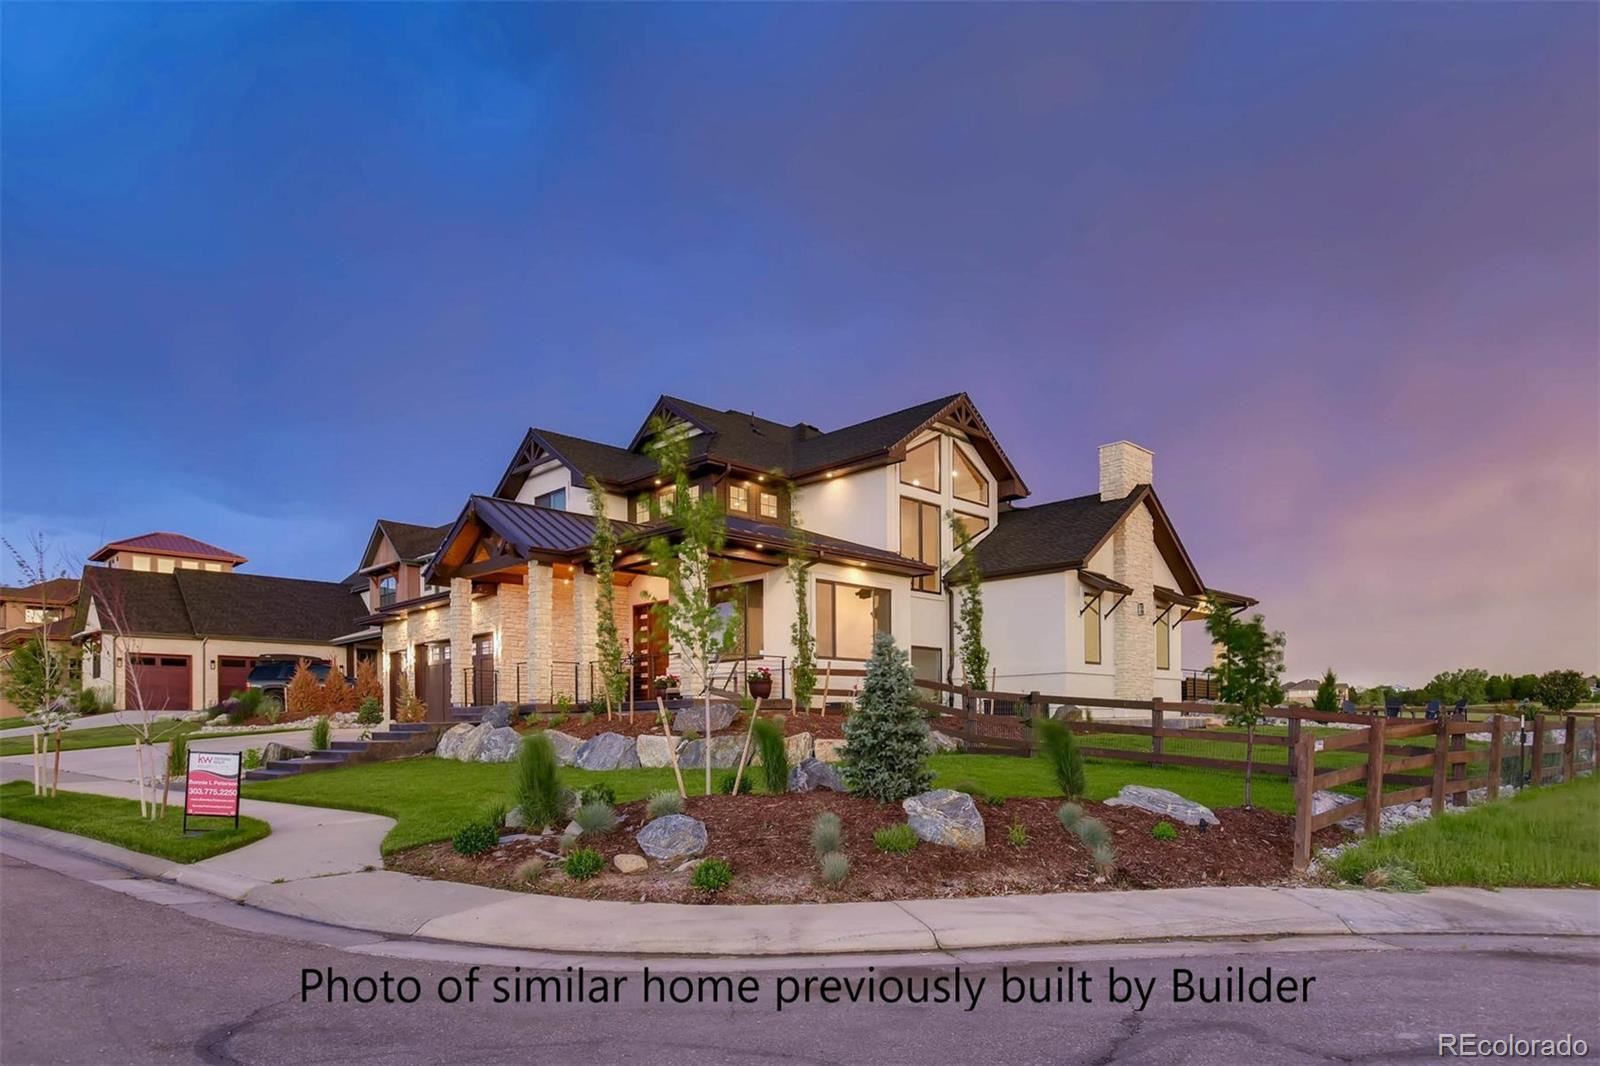 Photo of home previously built by Flatiron Development & Custom Homes